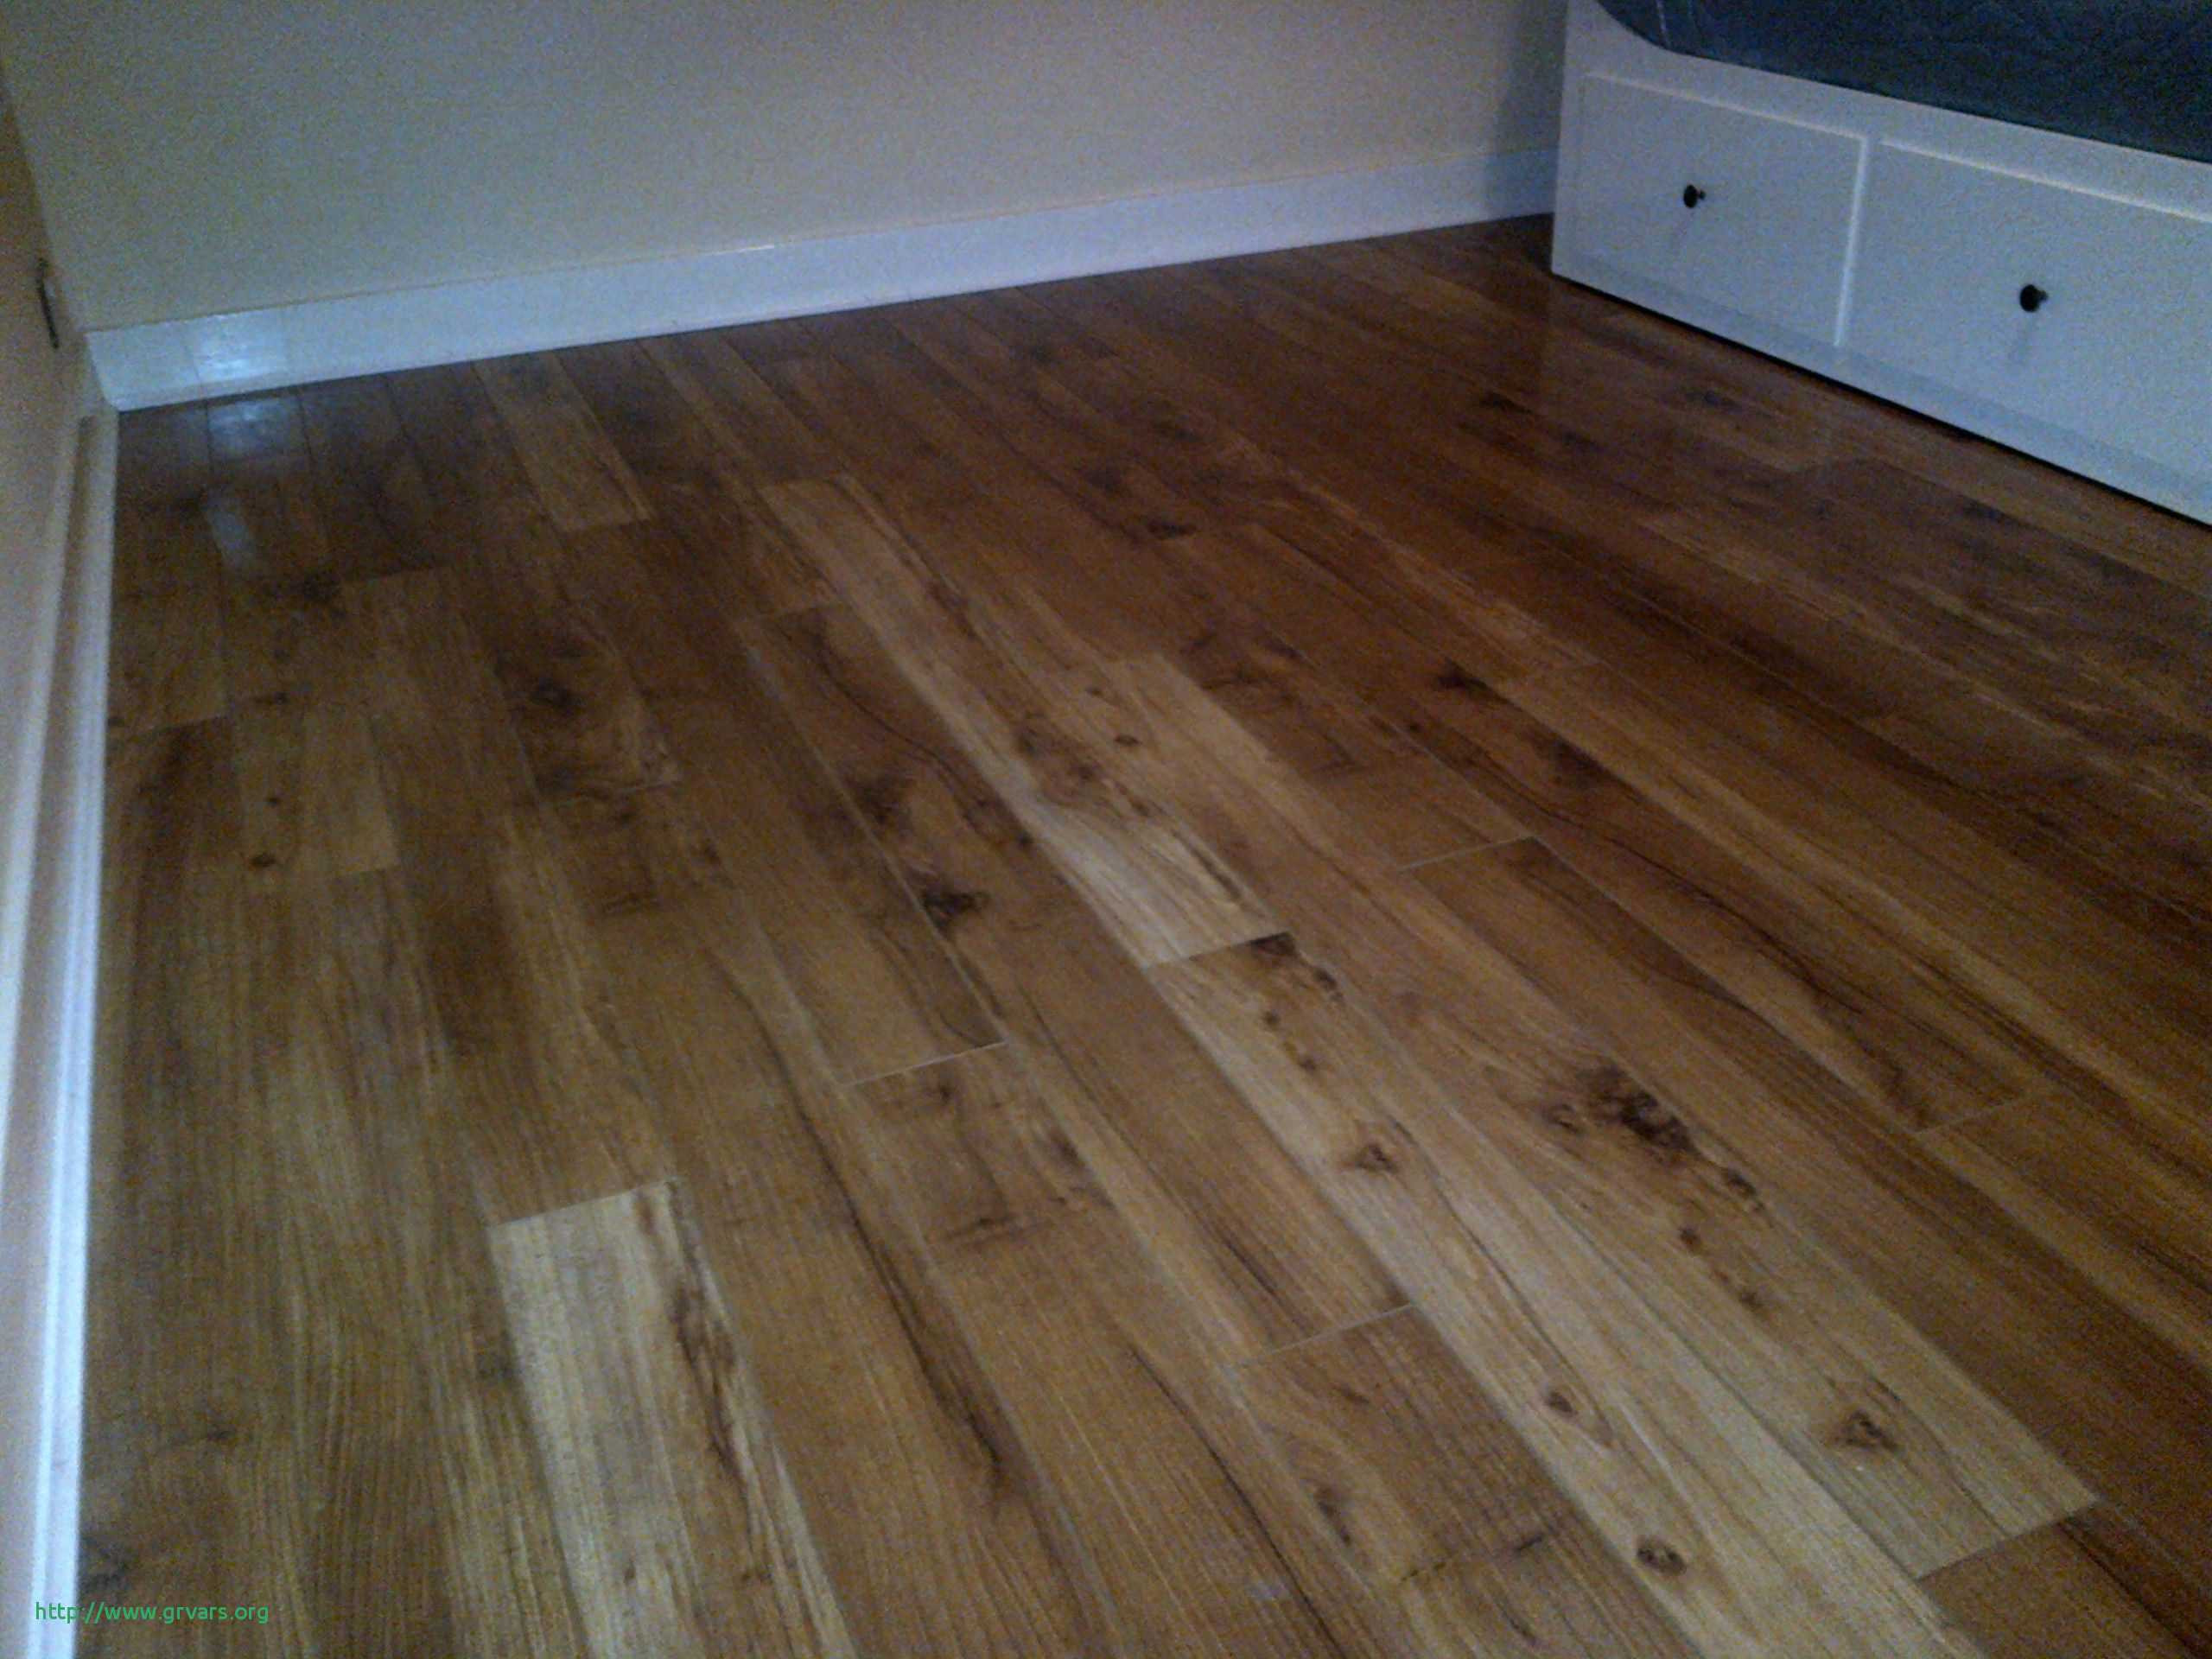 can you clean engineered hardwood floors with vinegar of 23 nouveau how to clean engineered wood floors with vinegar ideas blog with regard to how to clean engineered wood floors with vinegar charmant well done niall now you can find